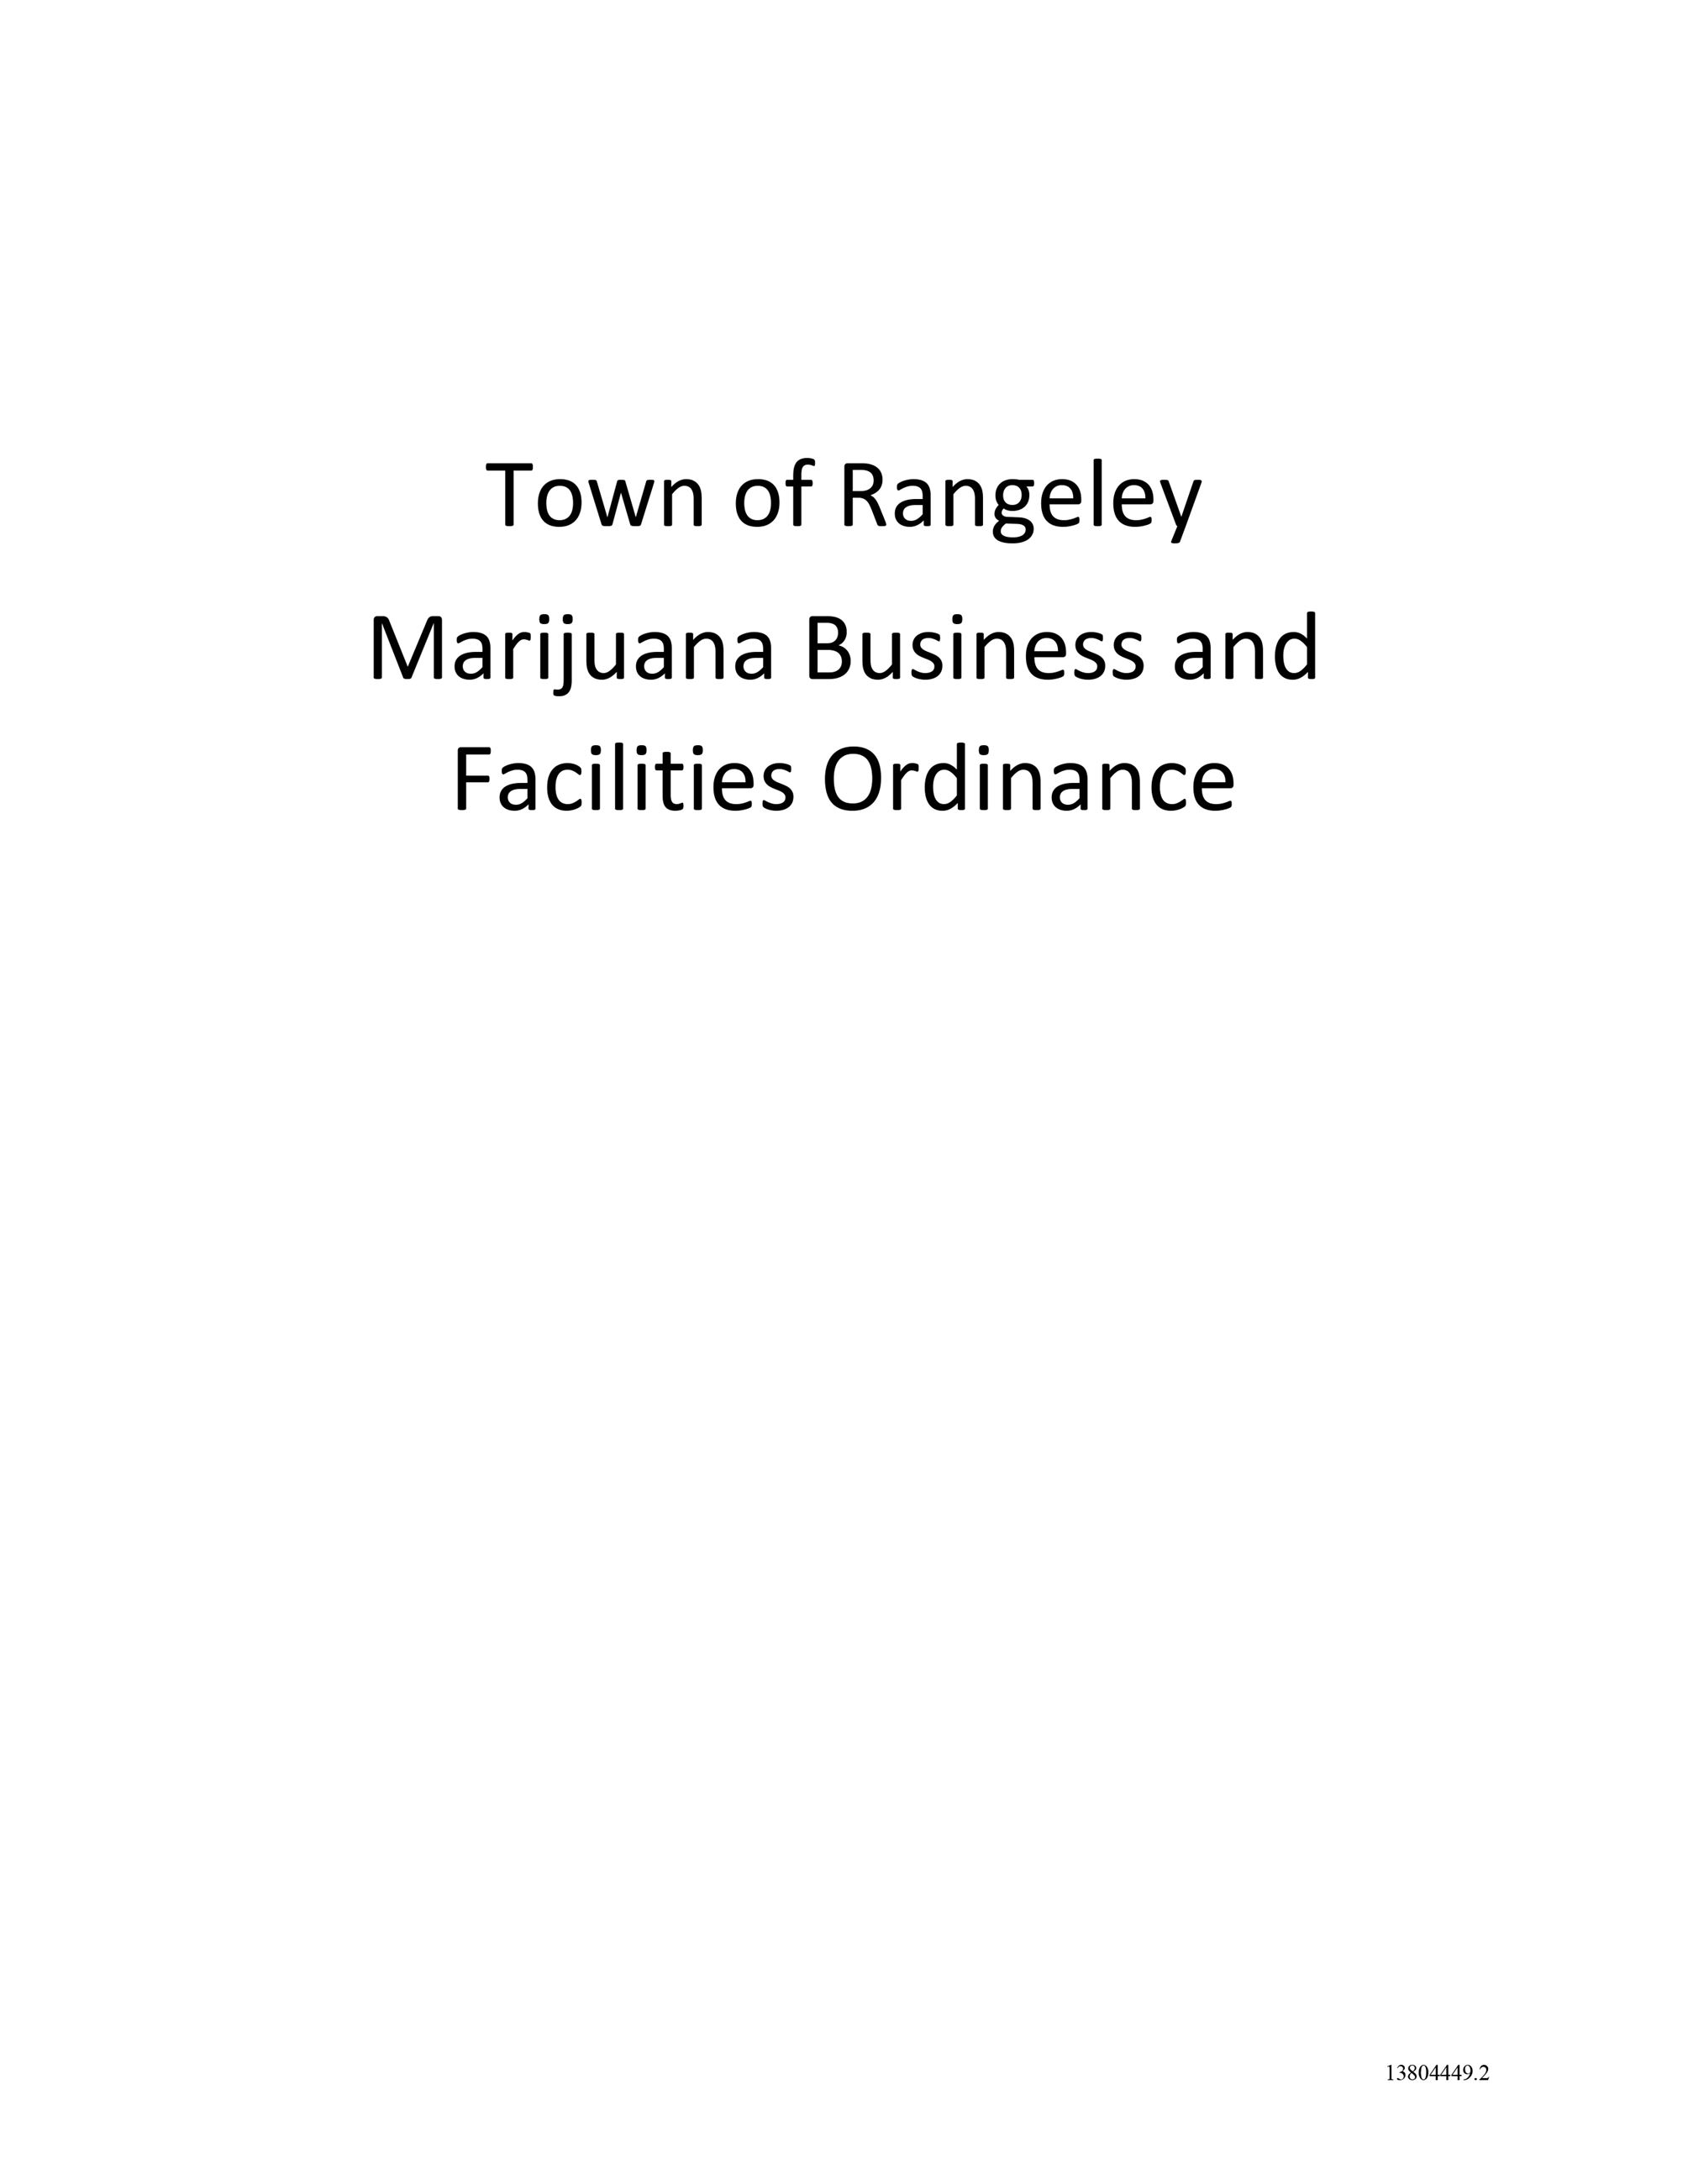 Marijuana Business and Facilities Ordinance-1